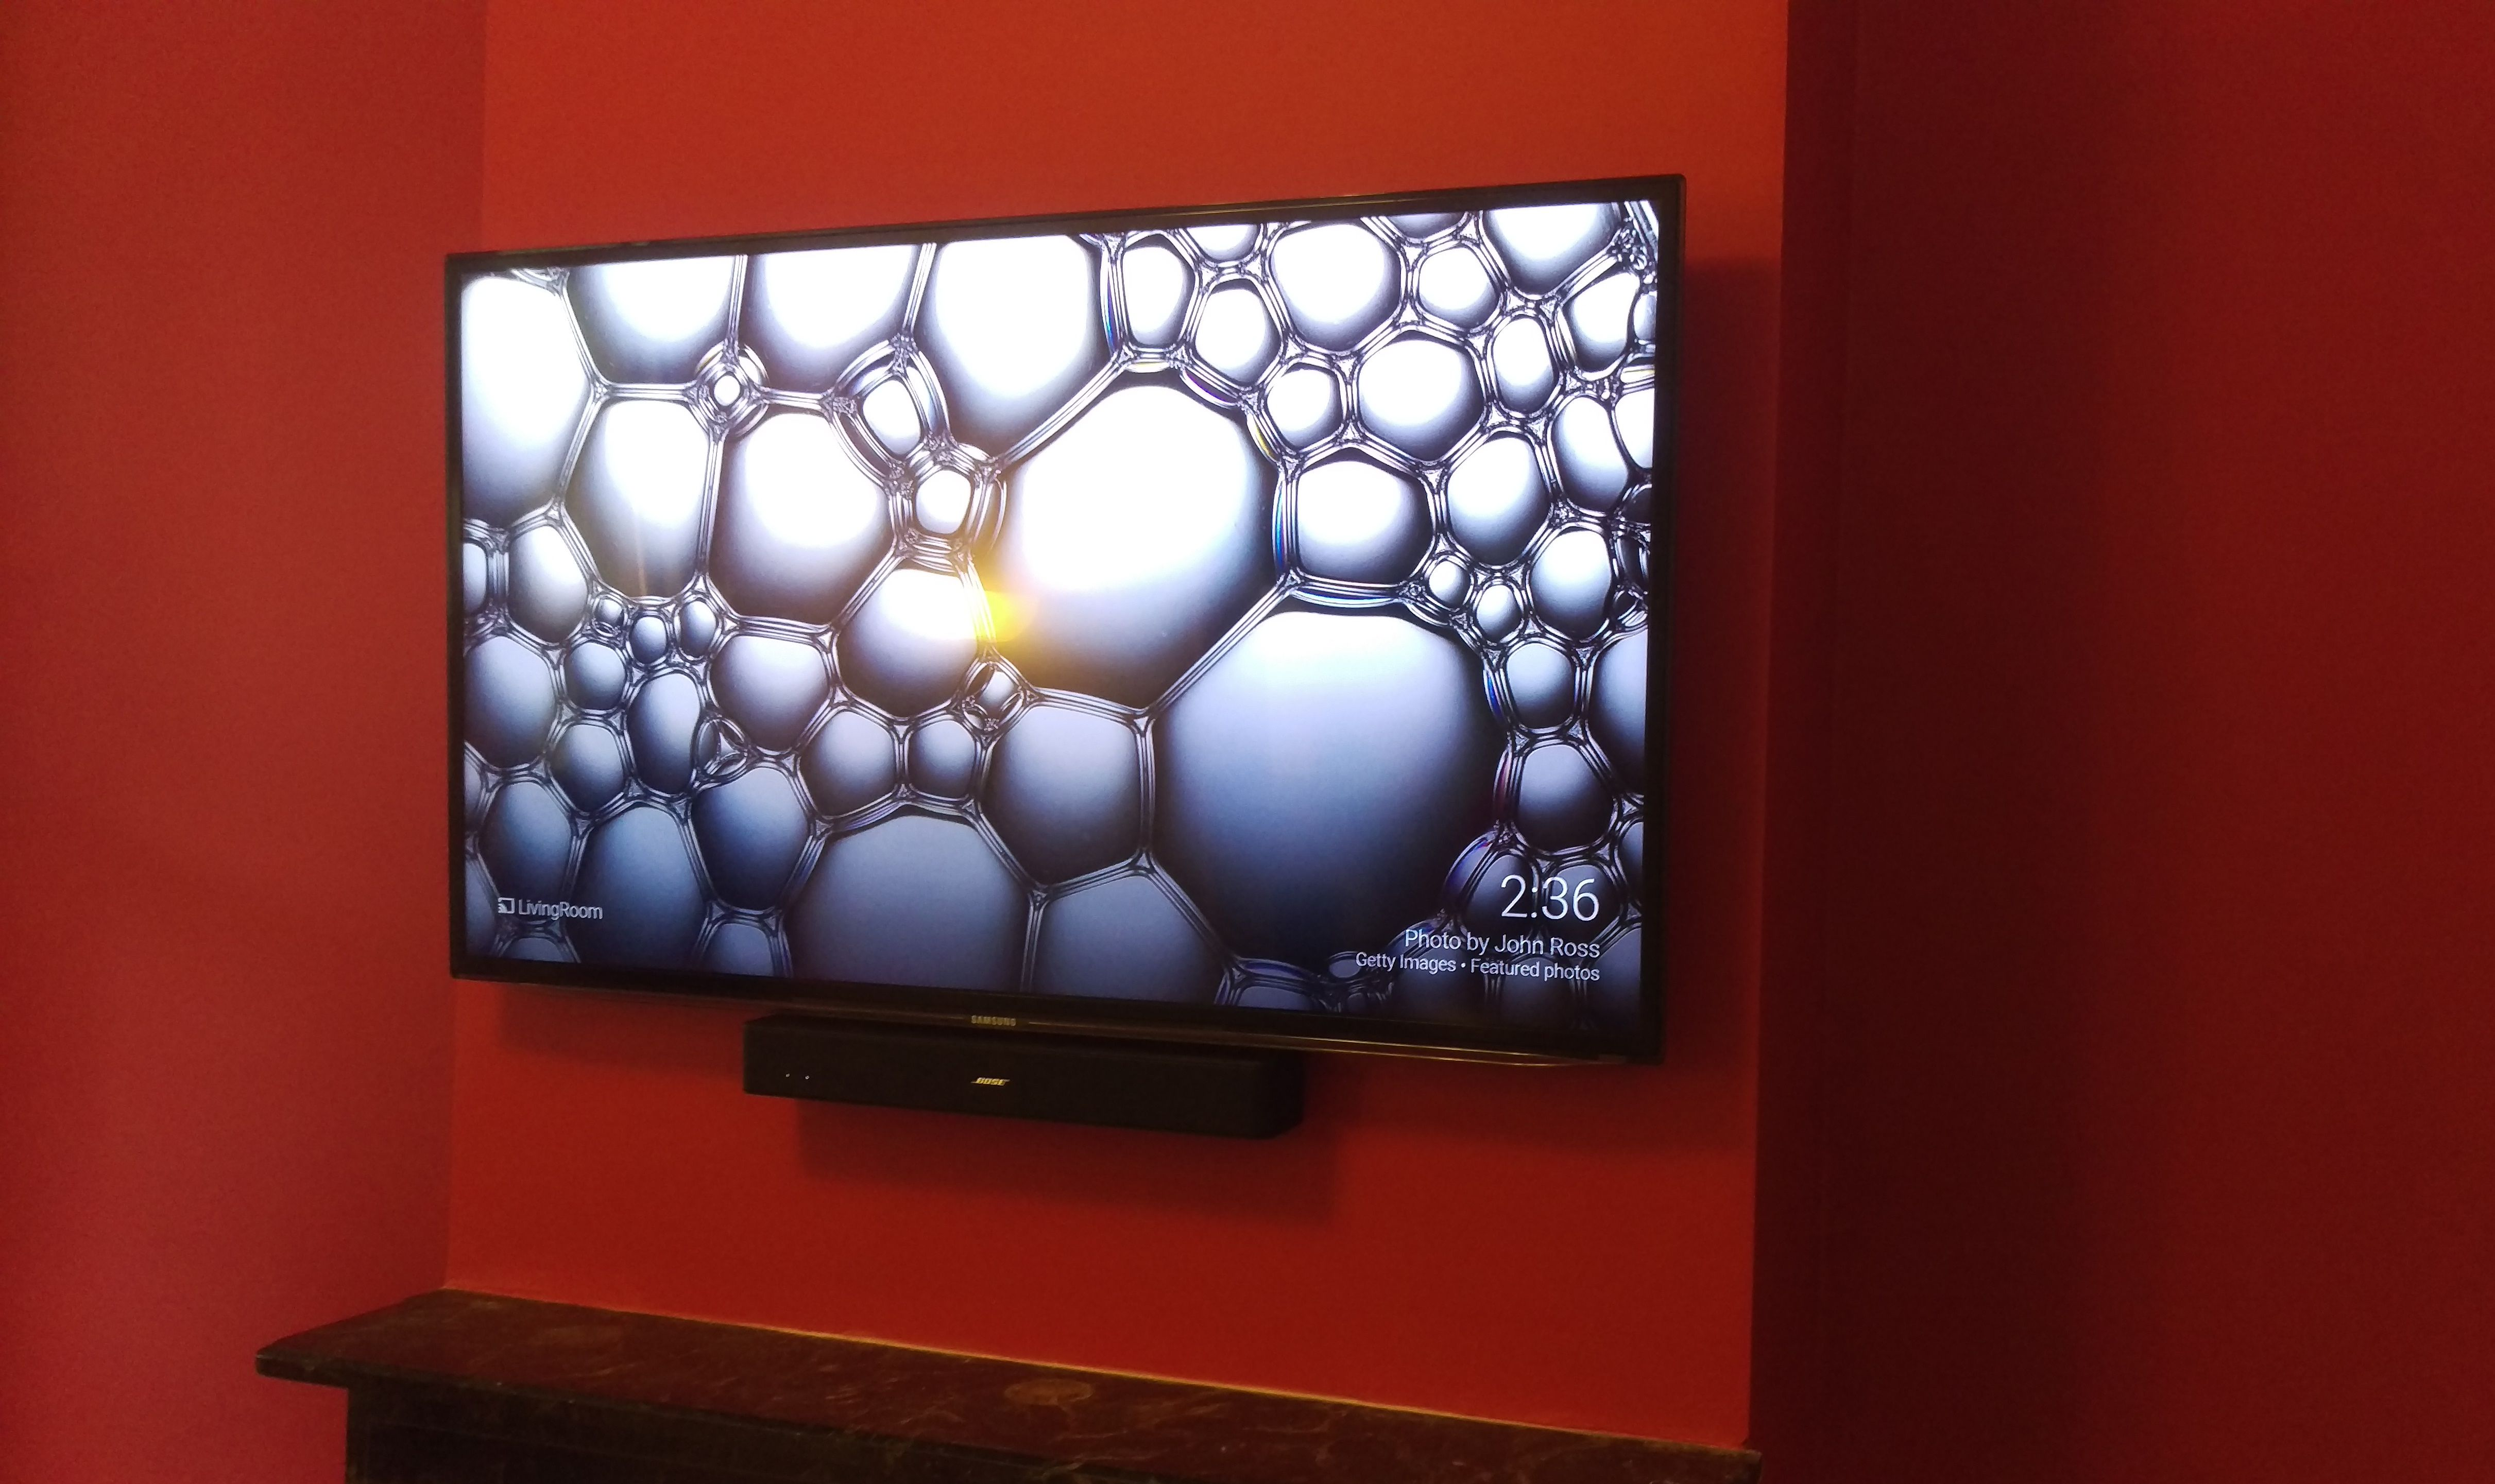 Samsung 55 Tv With Bose Solo5 Sound Bar Above Working Fire Place Flat Tv Sound Bar Flat Screen